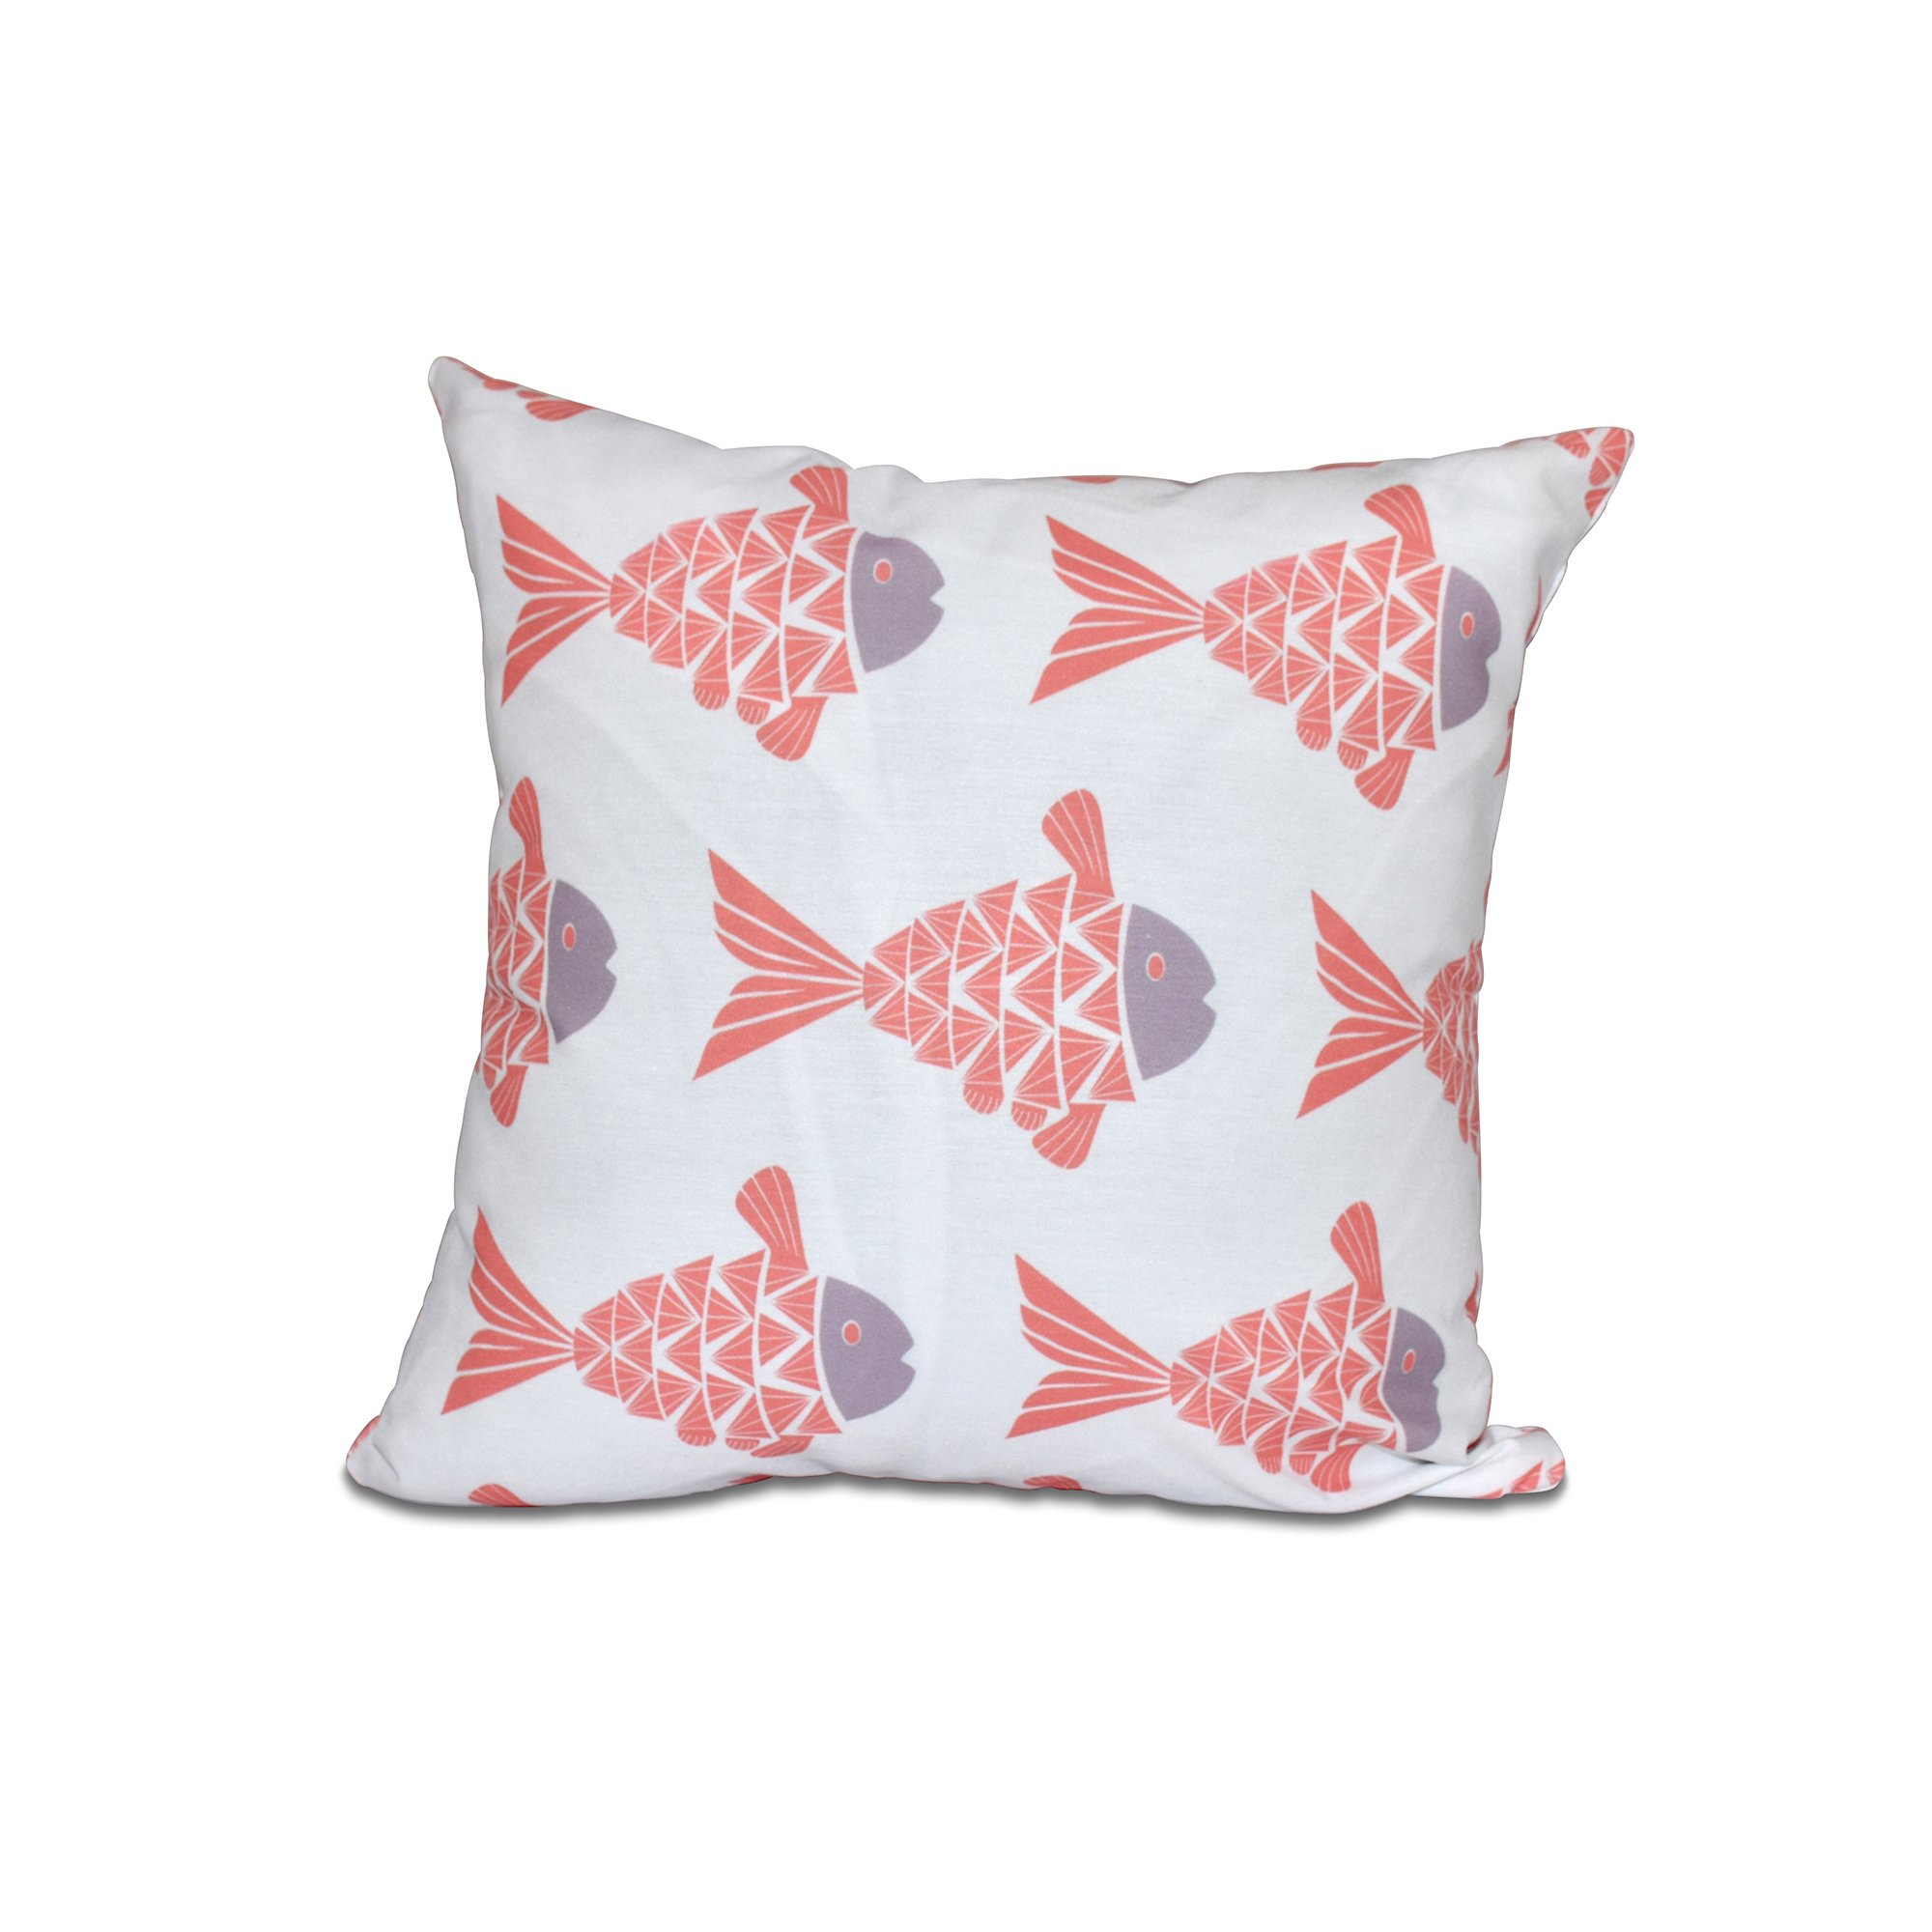 E by design 26 x 26 Fish Tales Animal Print Coral Pillow